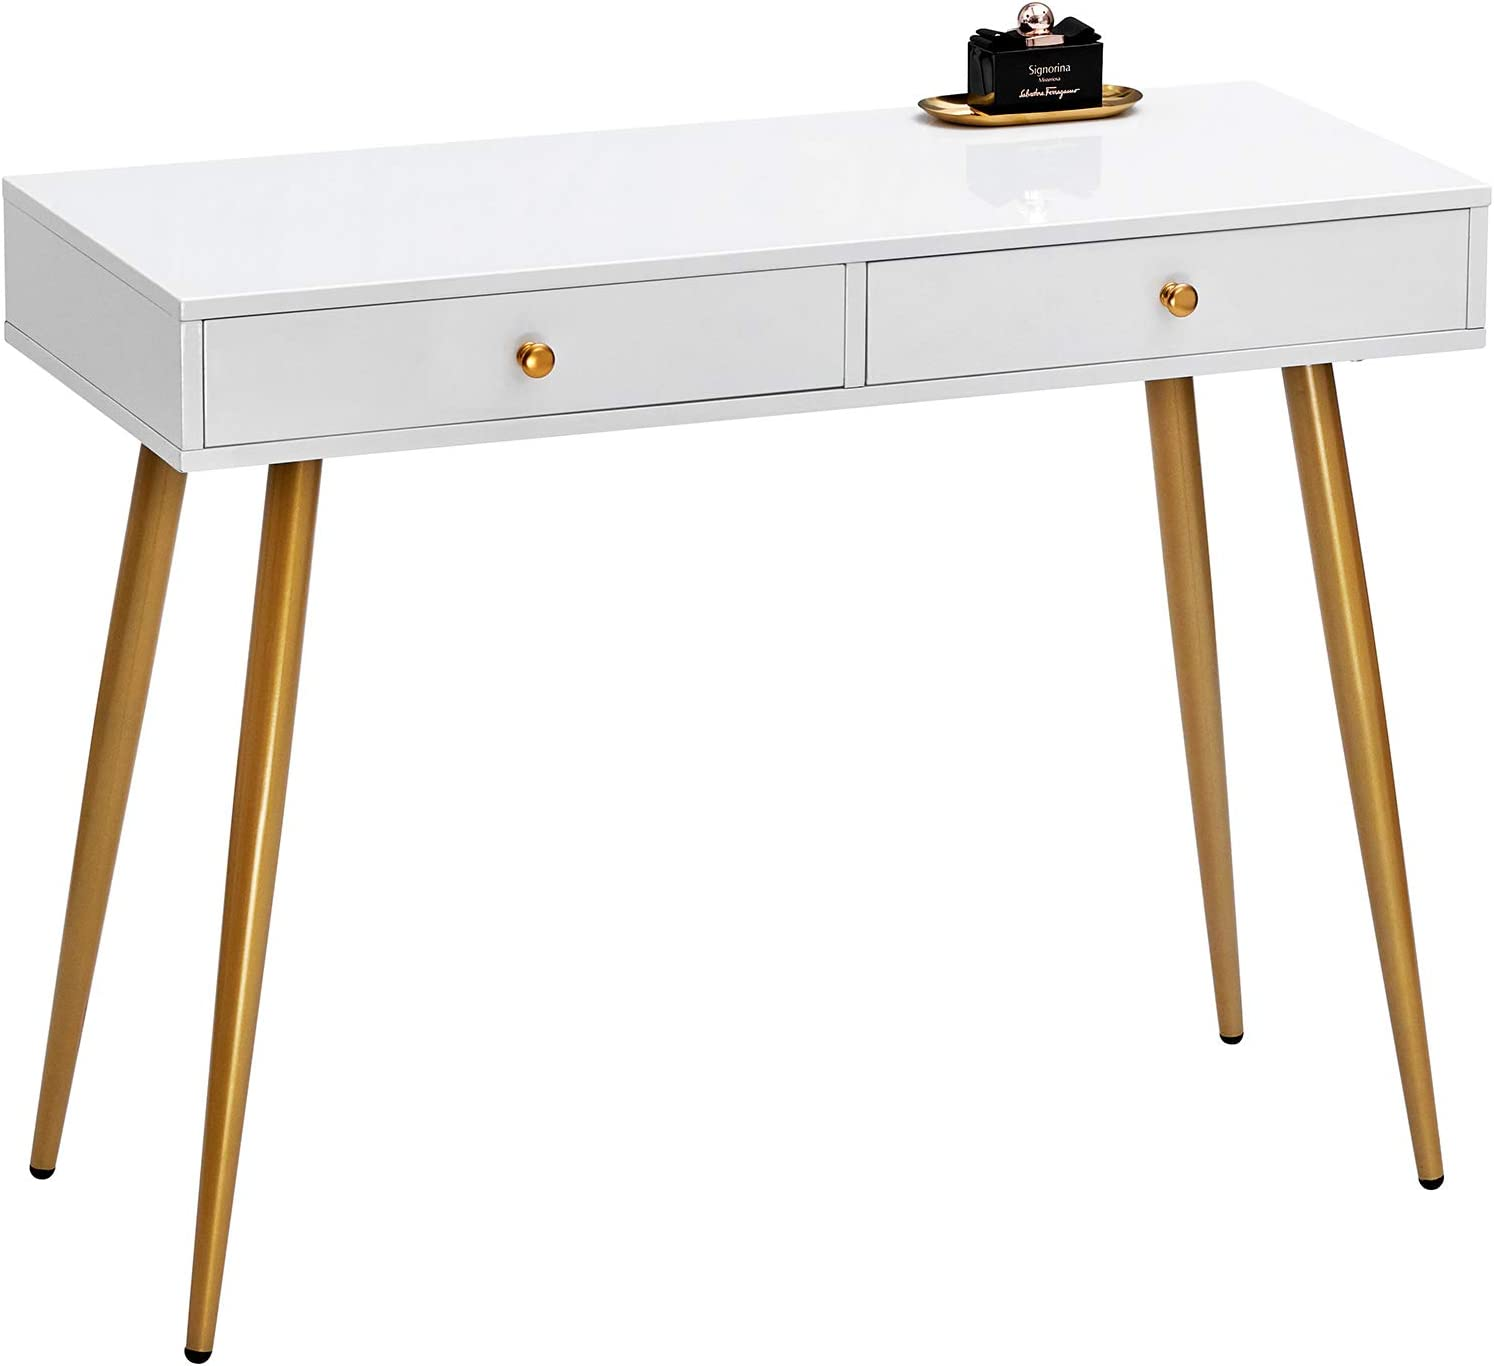 GreenForest Vanity Desk, Makeup Table with Glossy White Tabletop and 2 Drawers, Modern Home Office Computer Desk with Golden Legs